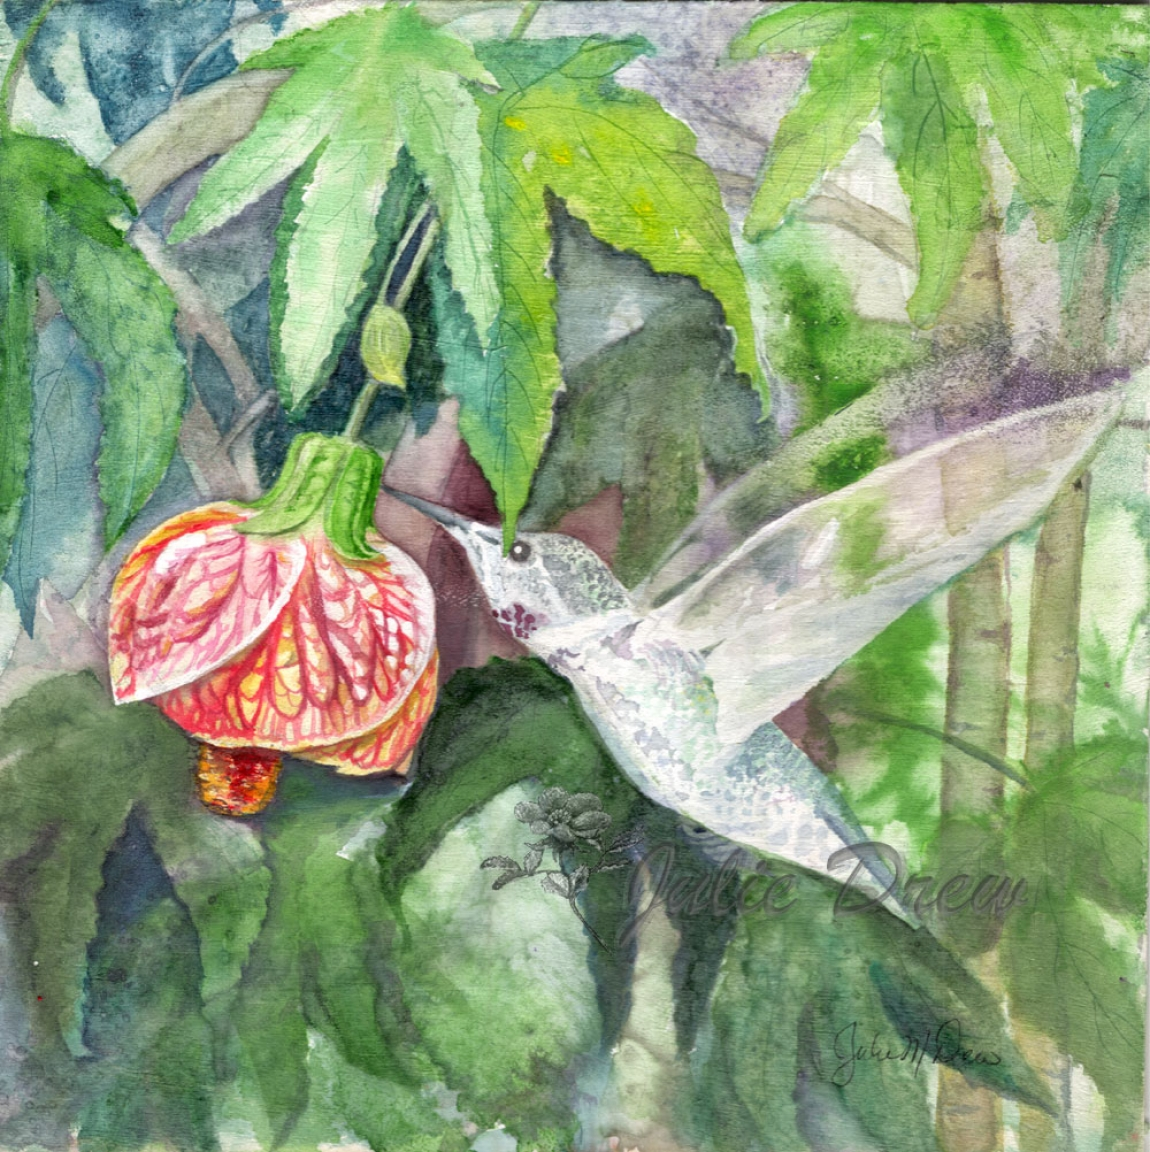 Dart in for a Taste, 7 x 7 in, Watercolor on Pine, artist Julie Drew